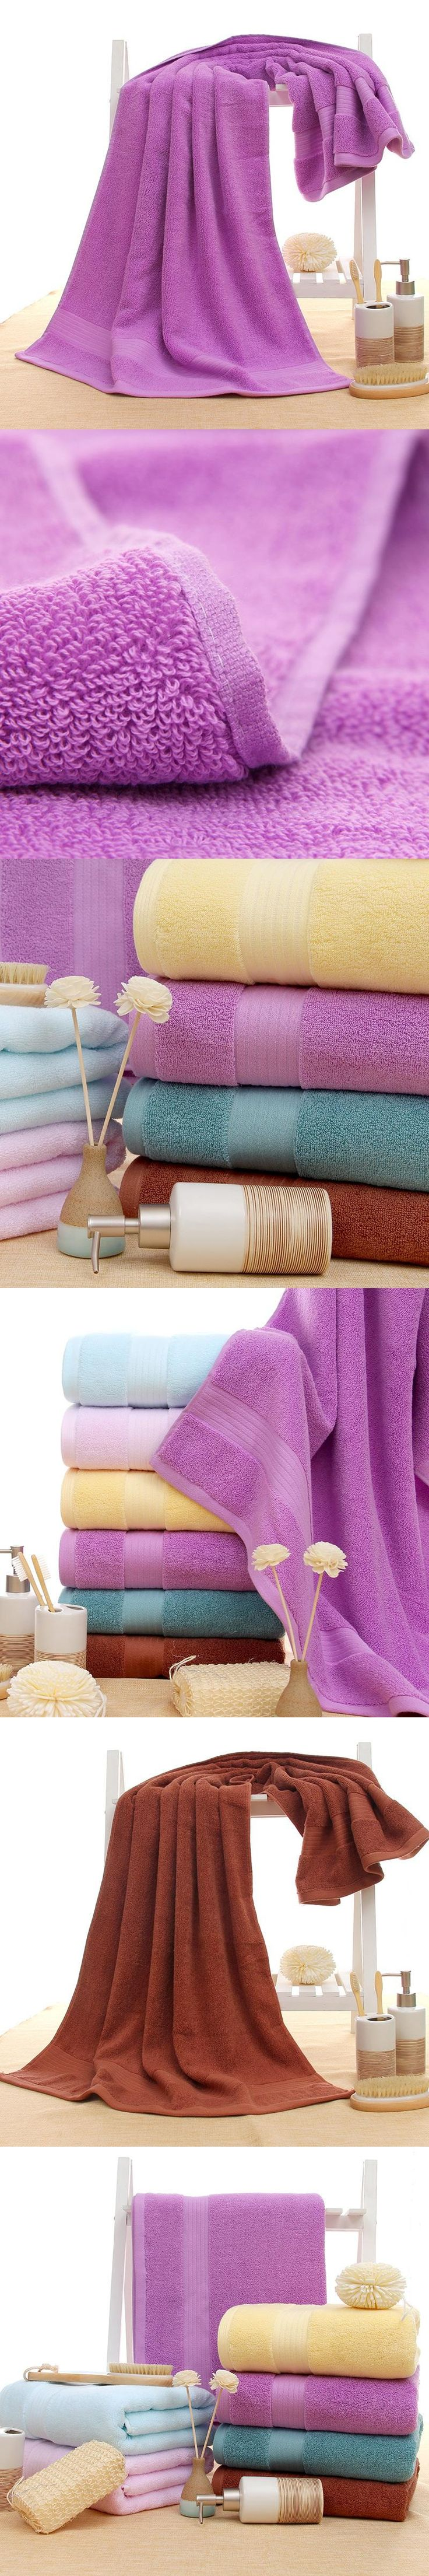 """New 140x70cm (27x55"""") 100% cotton Bath Towel Solid color Soft Towel Home Hotel Towels Quick Absorbency High Quality 500g"""